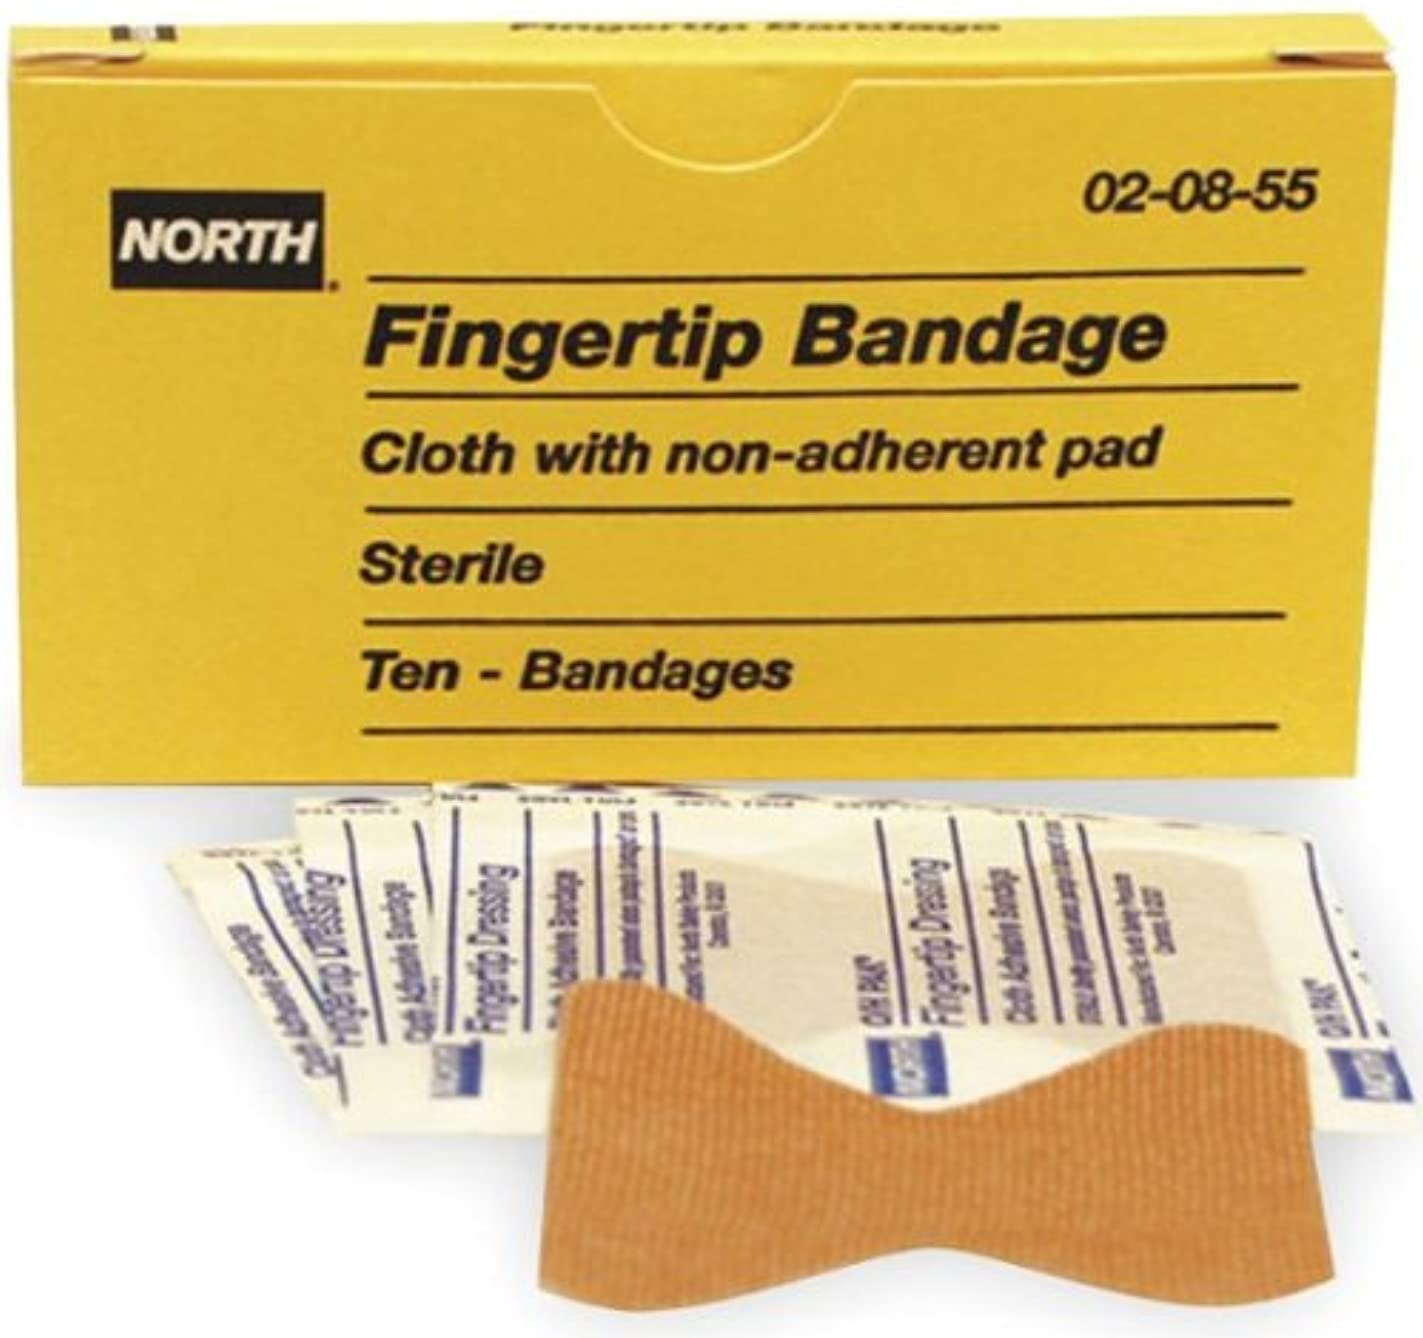 North by Honeywell 020855 Fingertip Bandage, 10 per unit